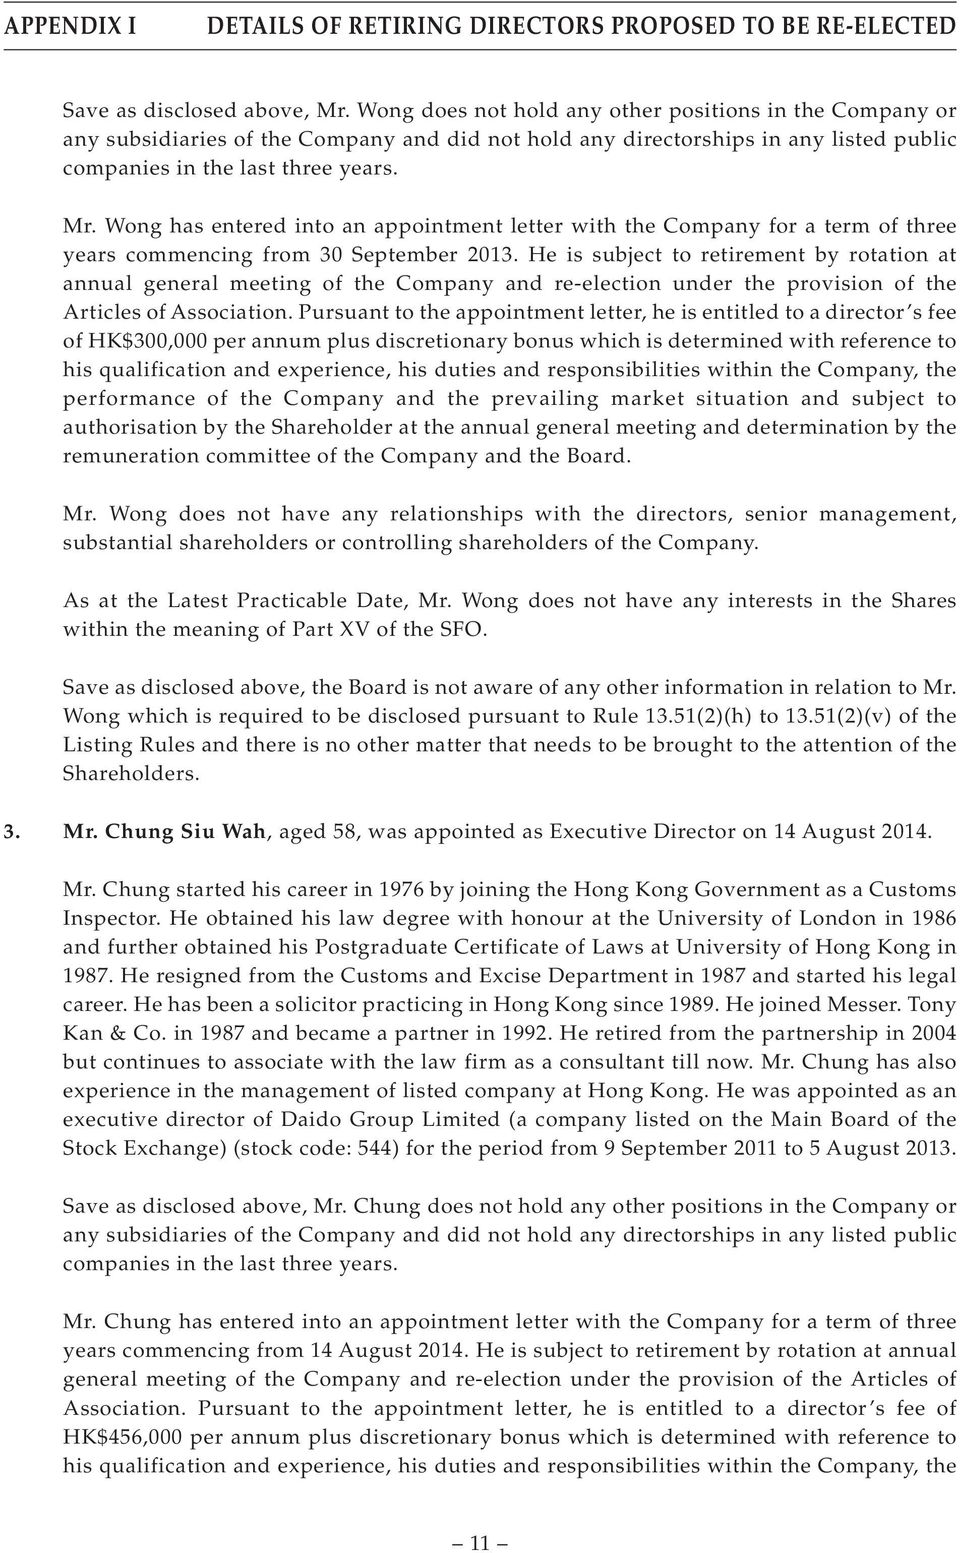 Wong has entered into an appointment letter with the Company for a term of three years commencing from 30 September 2013.